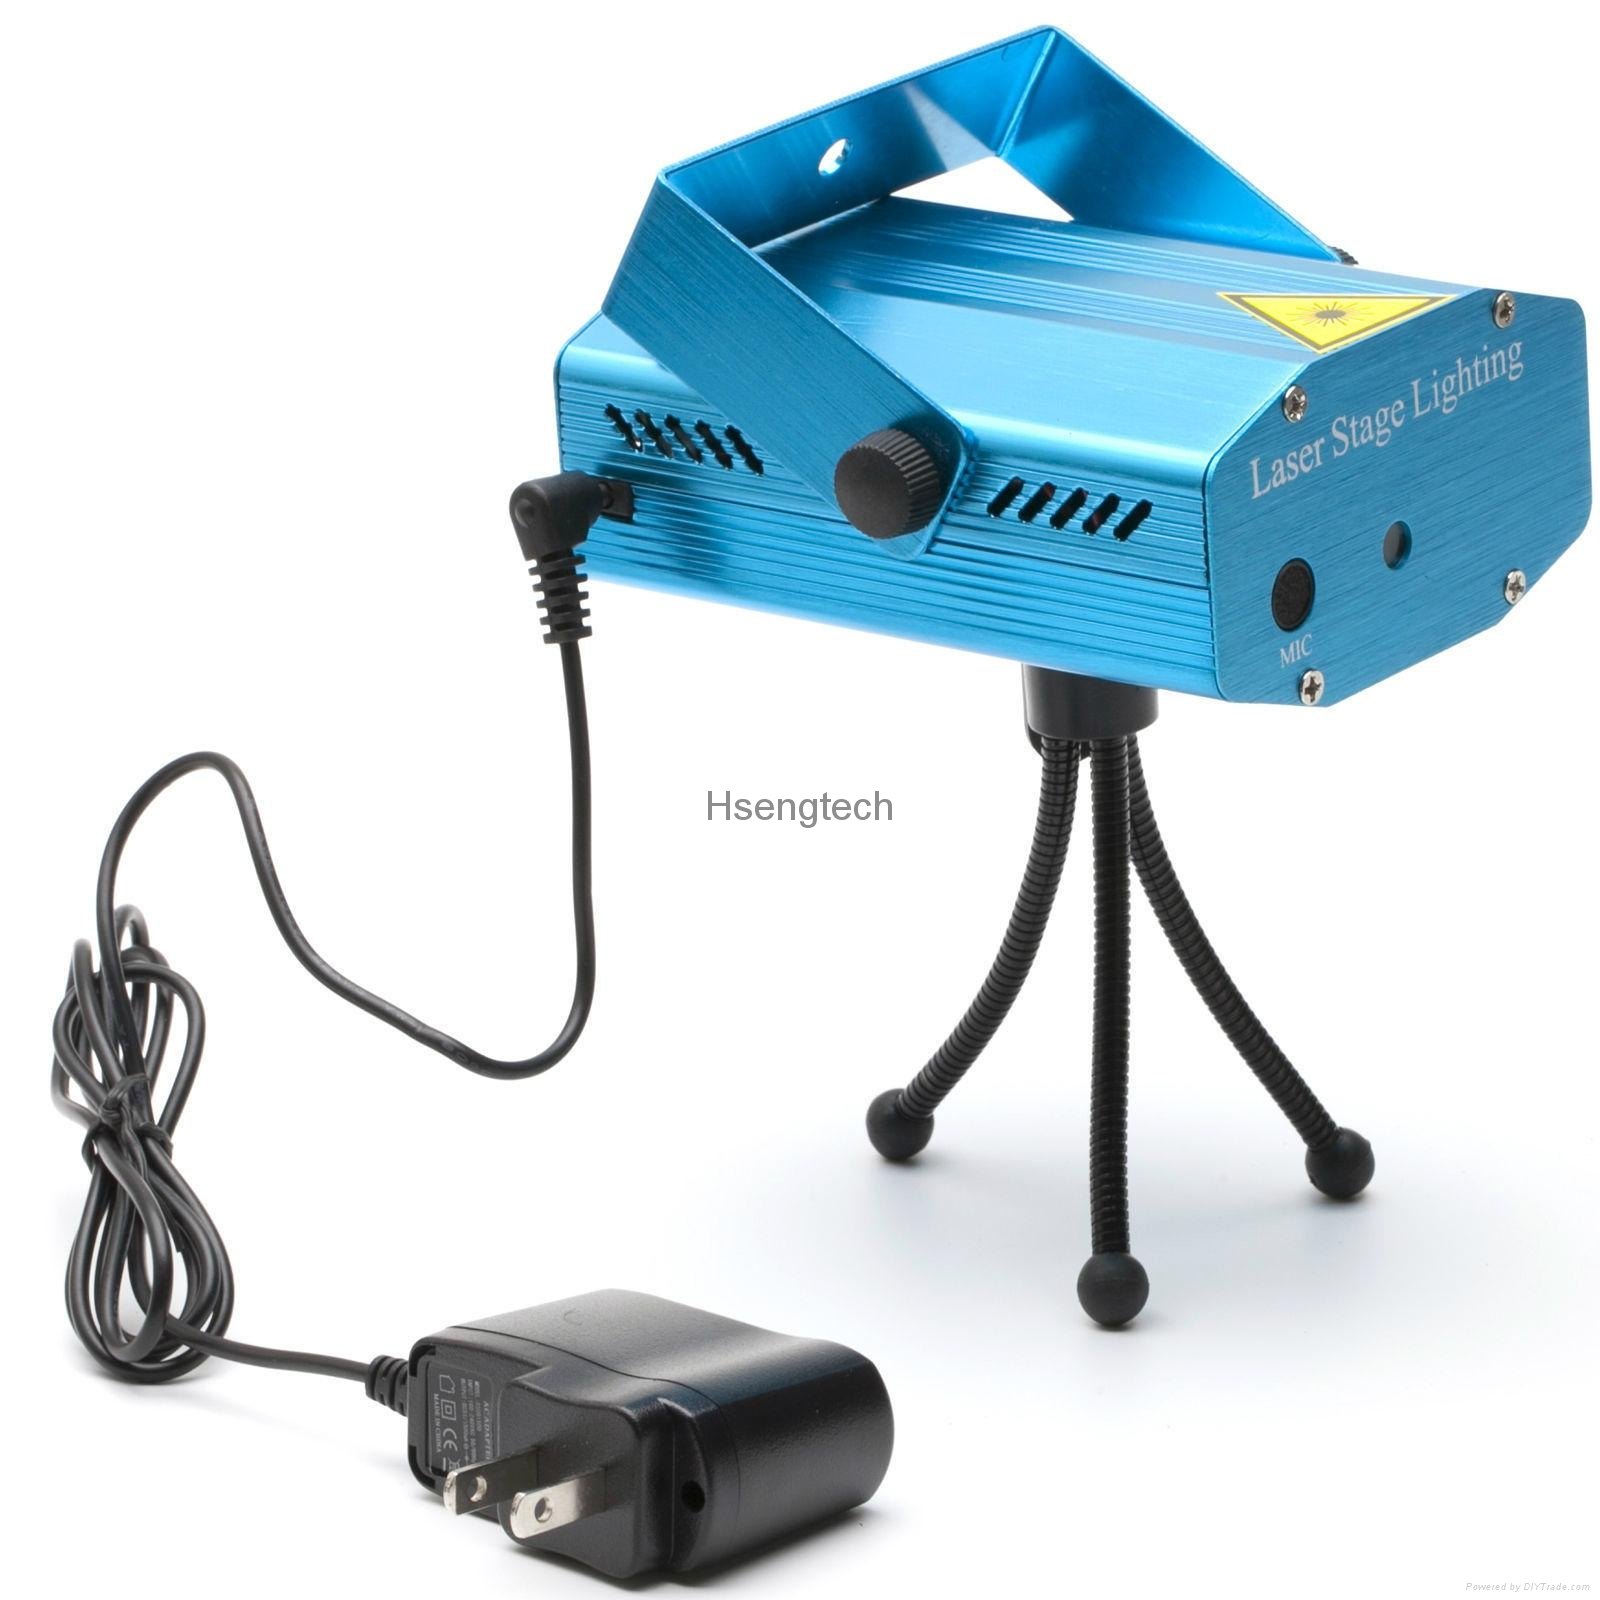 MINI Laser Stage Lighting Projector with MP3 Music Voice Control Remote Control 17